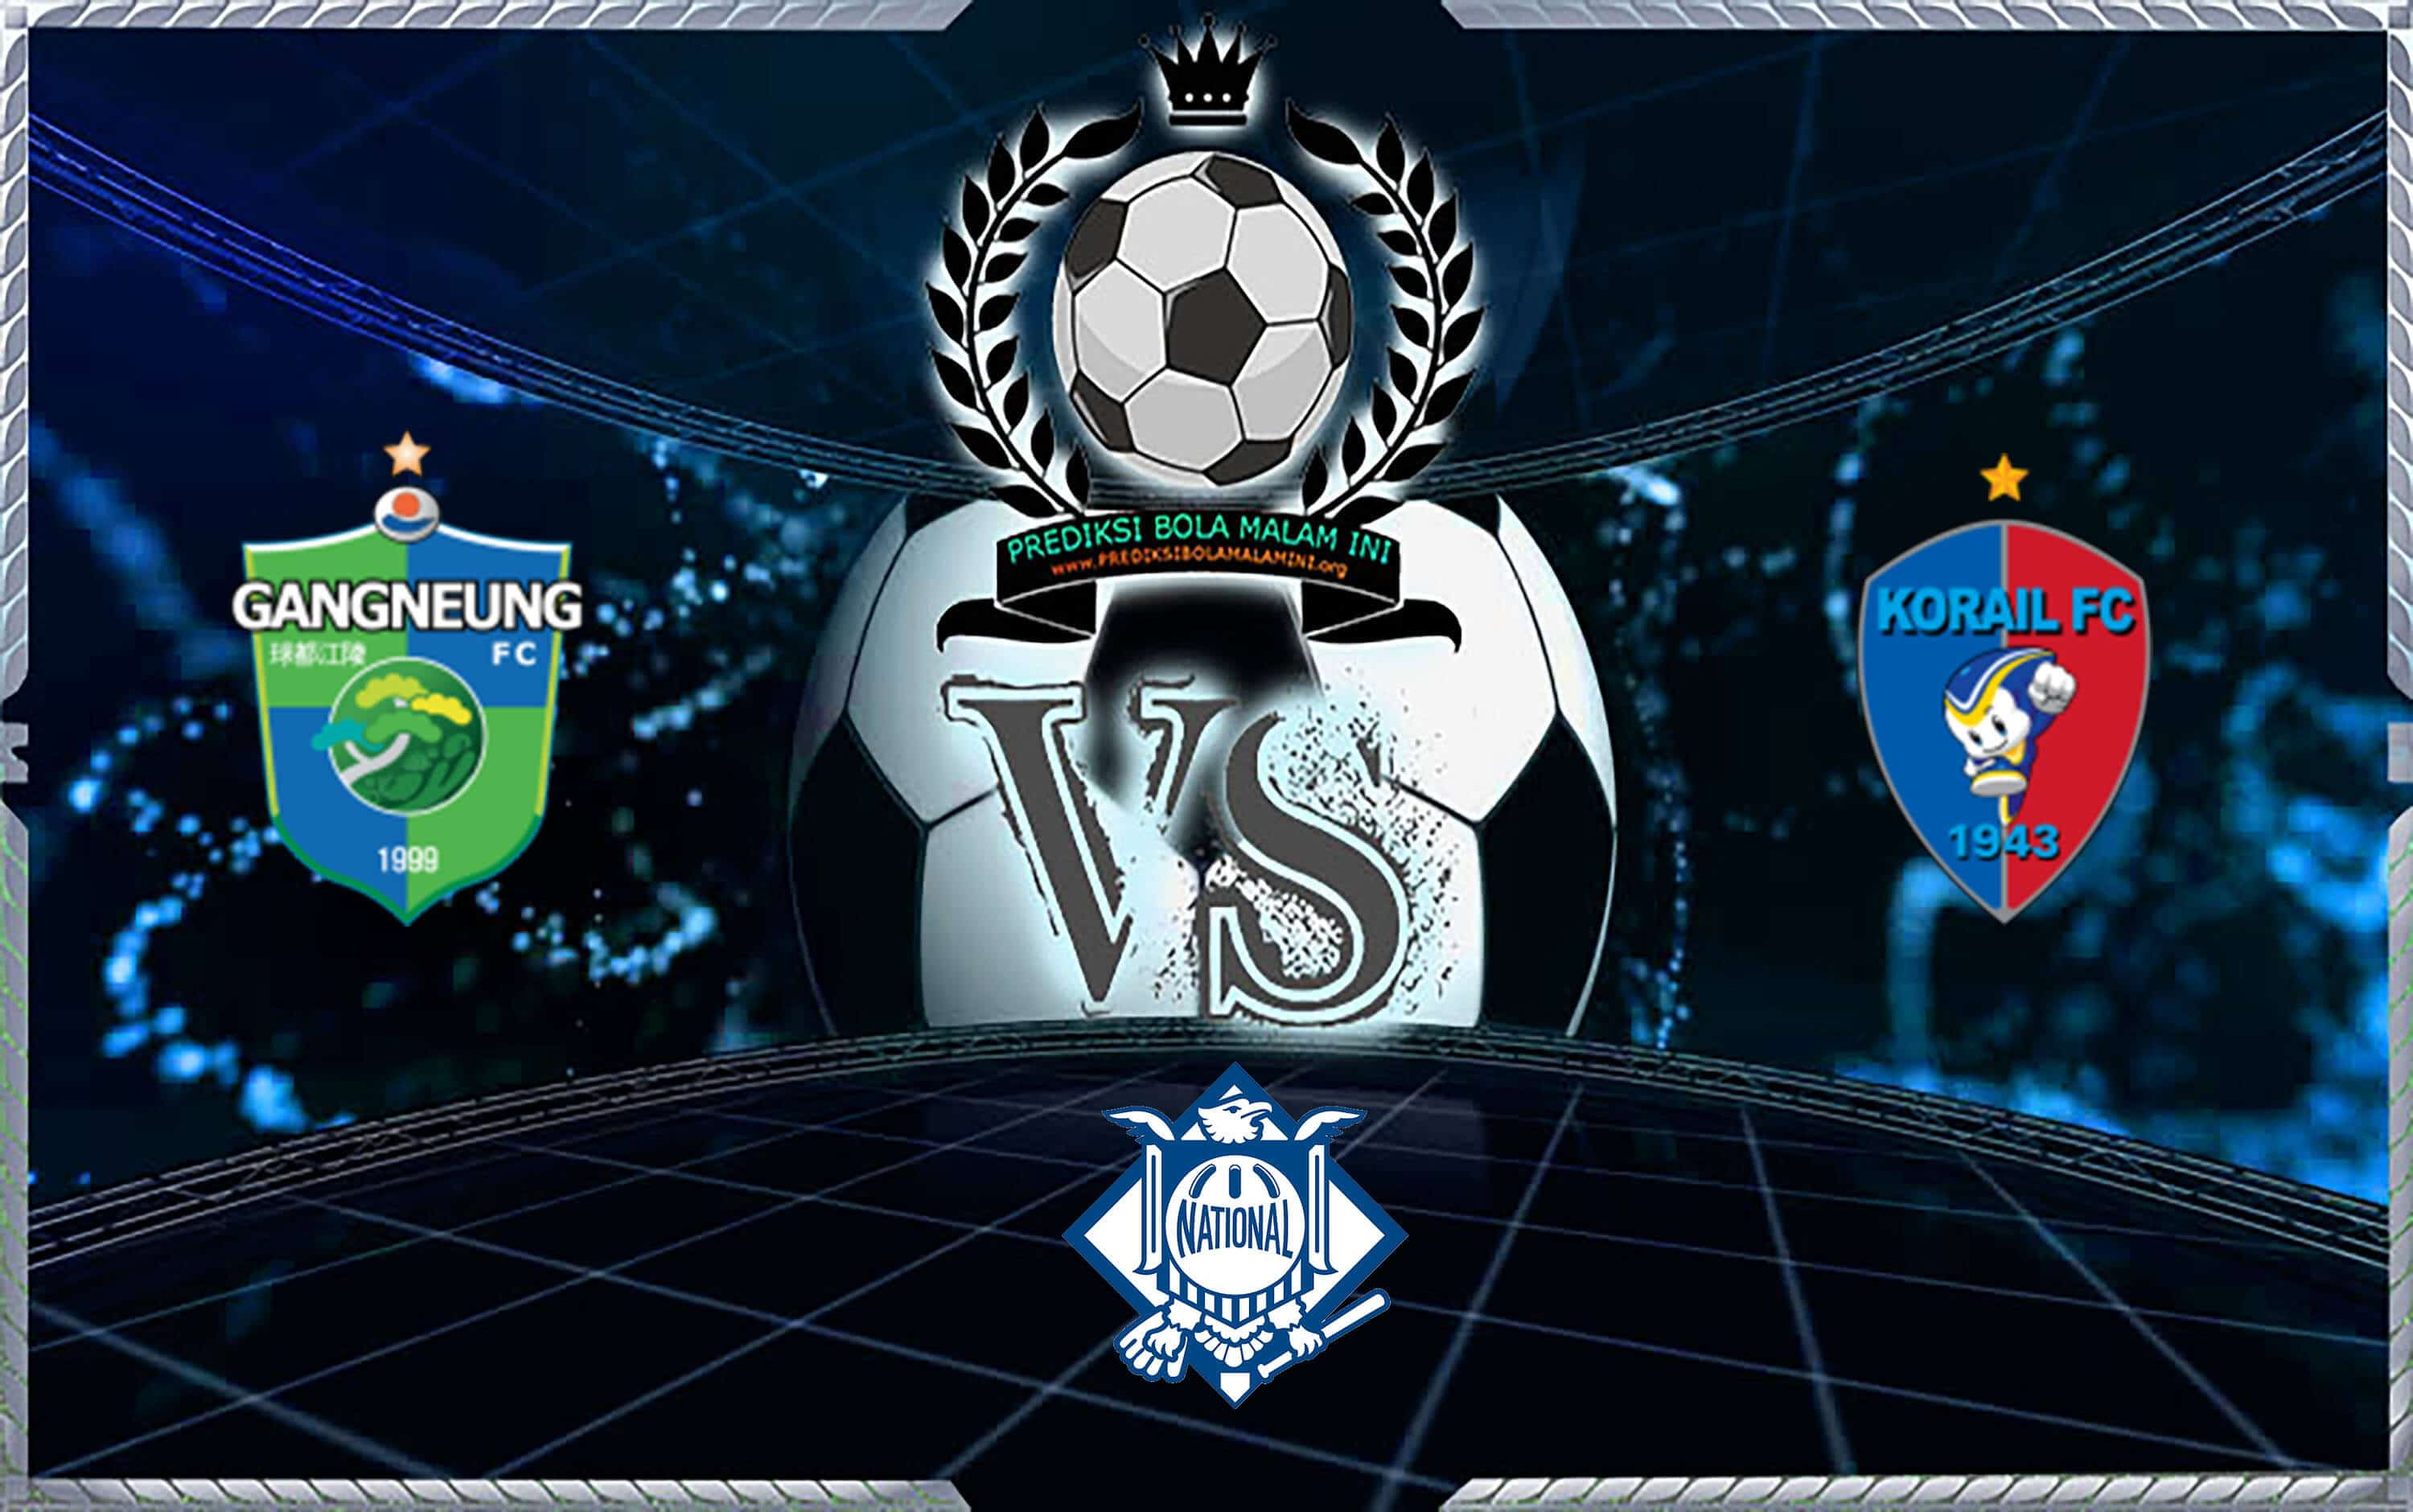 Prediksi Skor Gangneung City Vs Daejeon Korail 4 September 2019